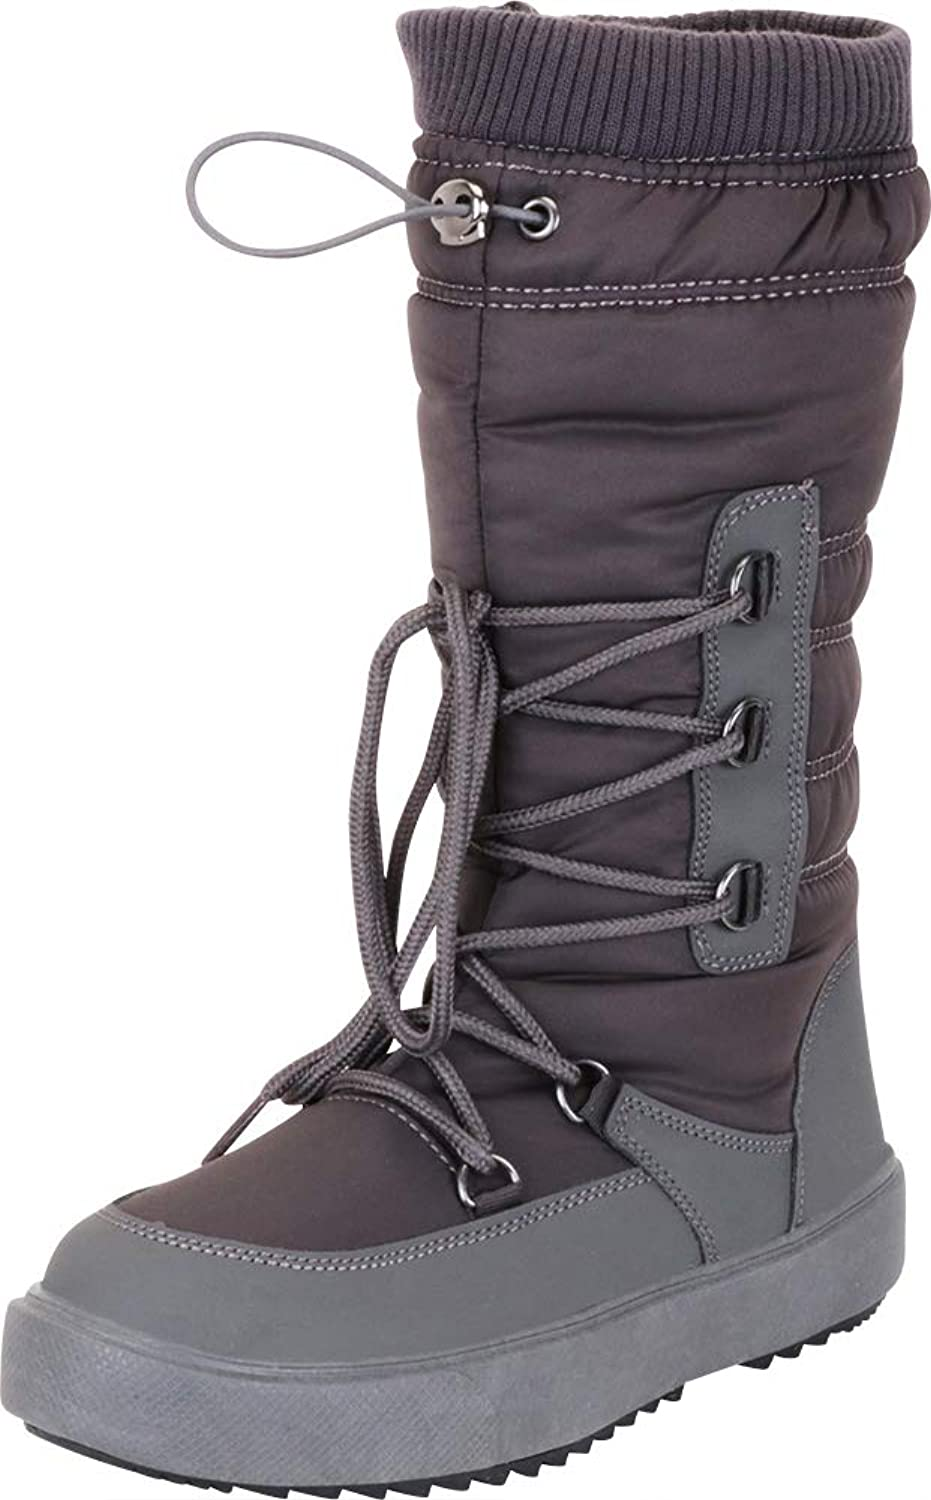 Cambridge Select Women's Quilted Puffer Drawstring Lace-Up Mid-Calf Winter Snow Boot